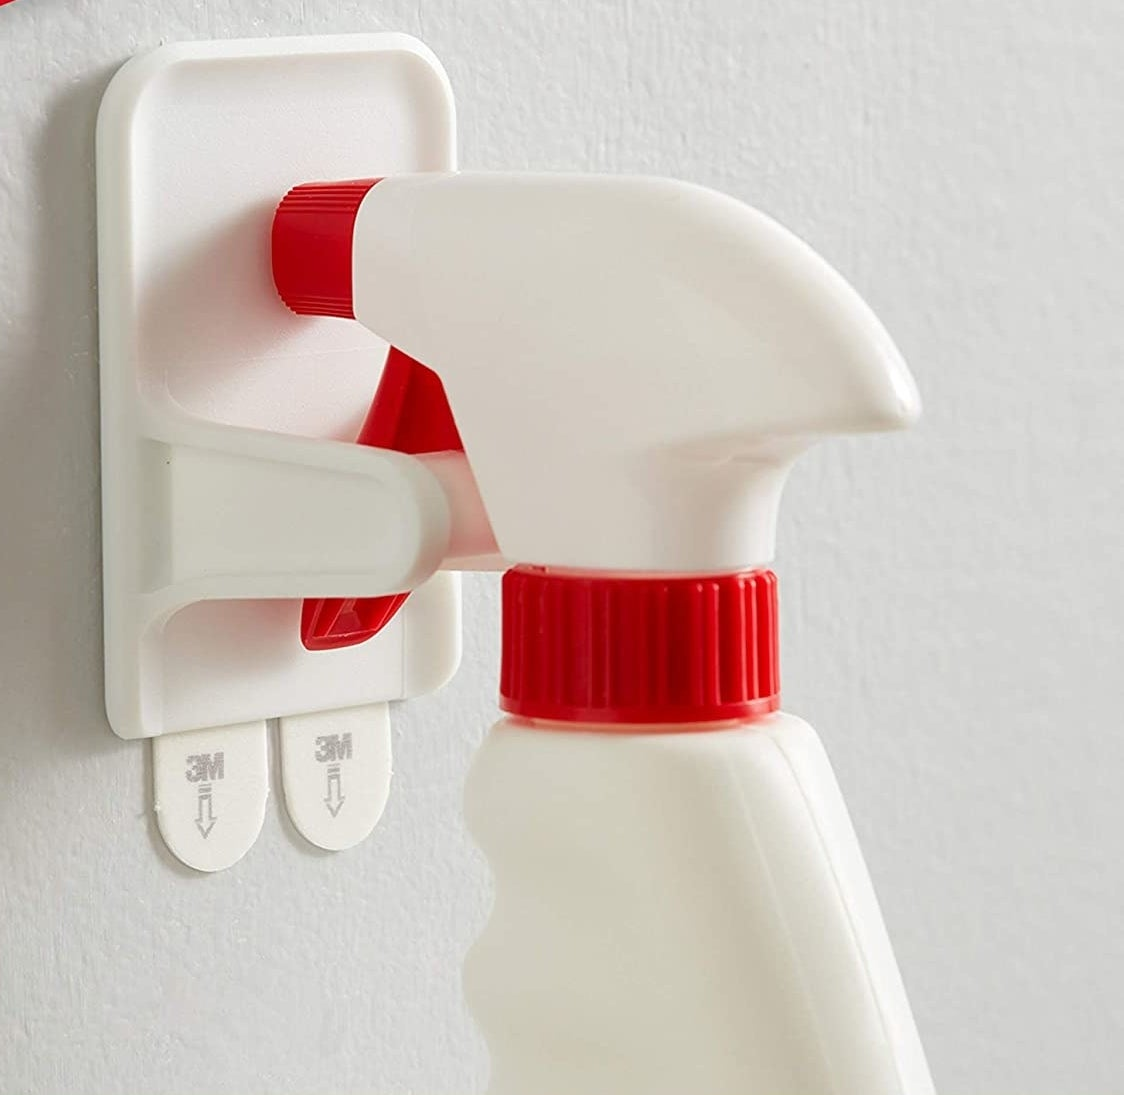 A spray bottle hanging securely from the spray bottle hanger